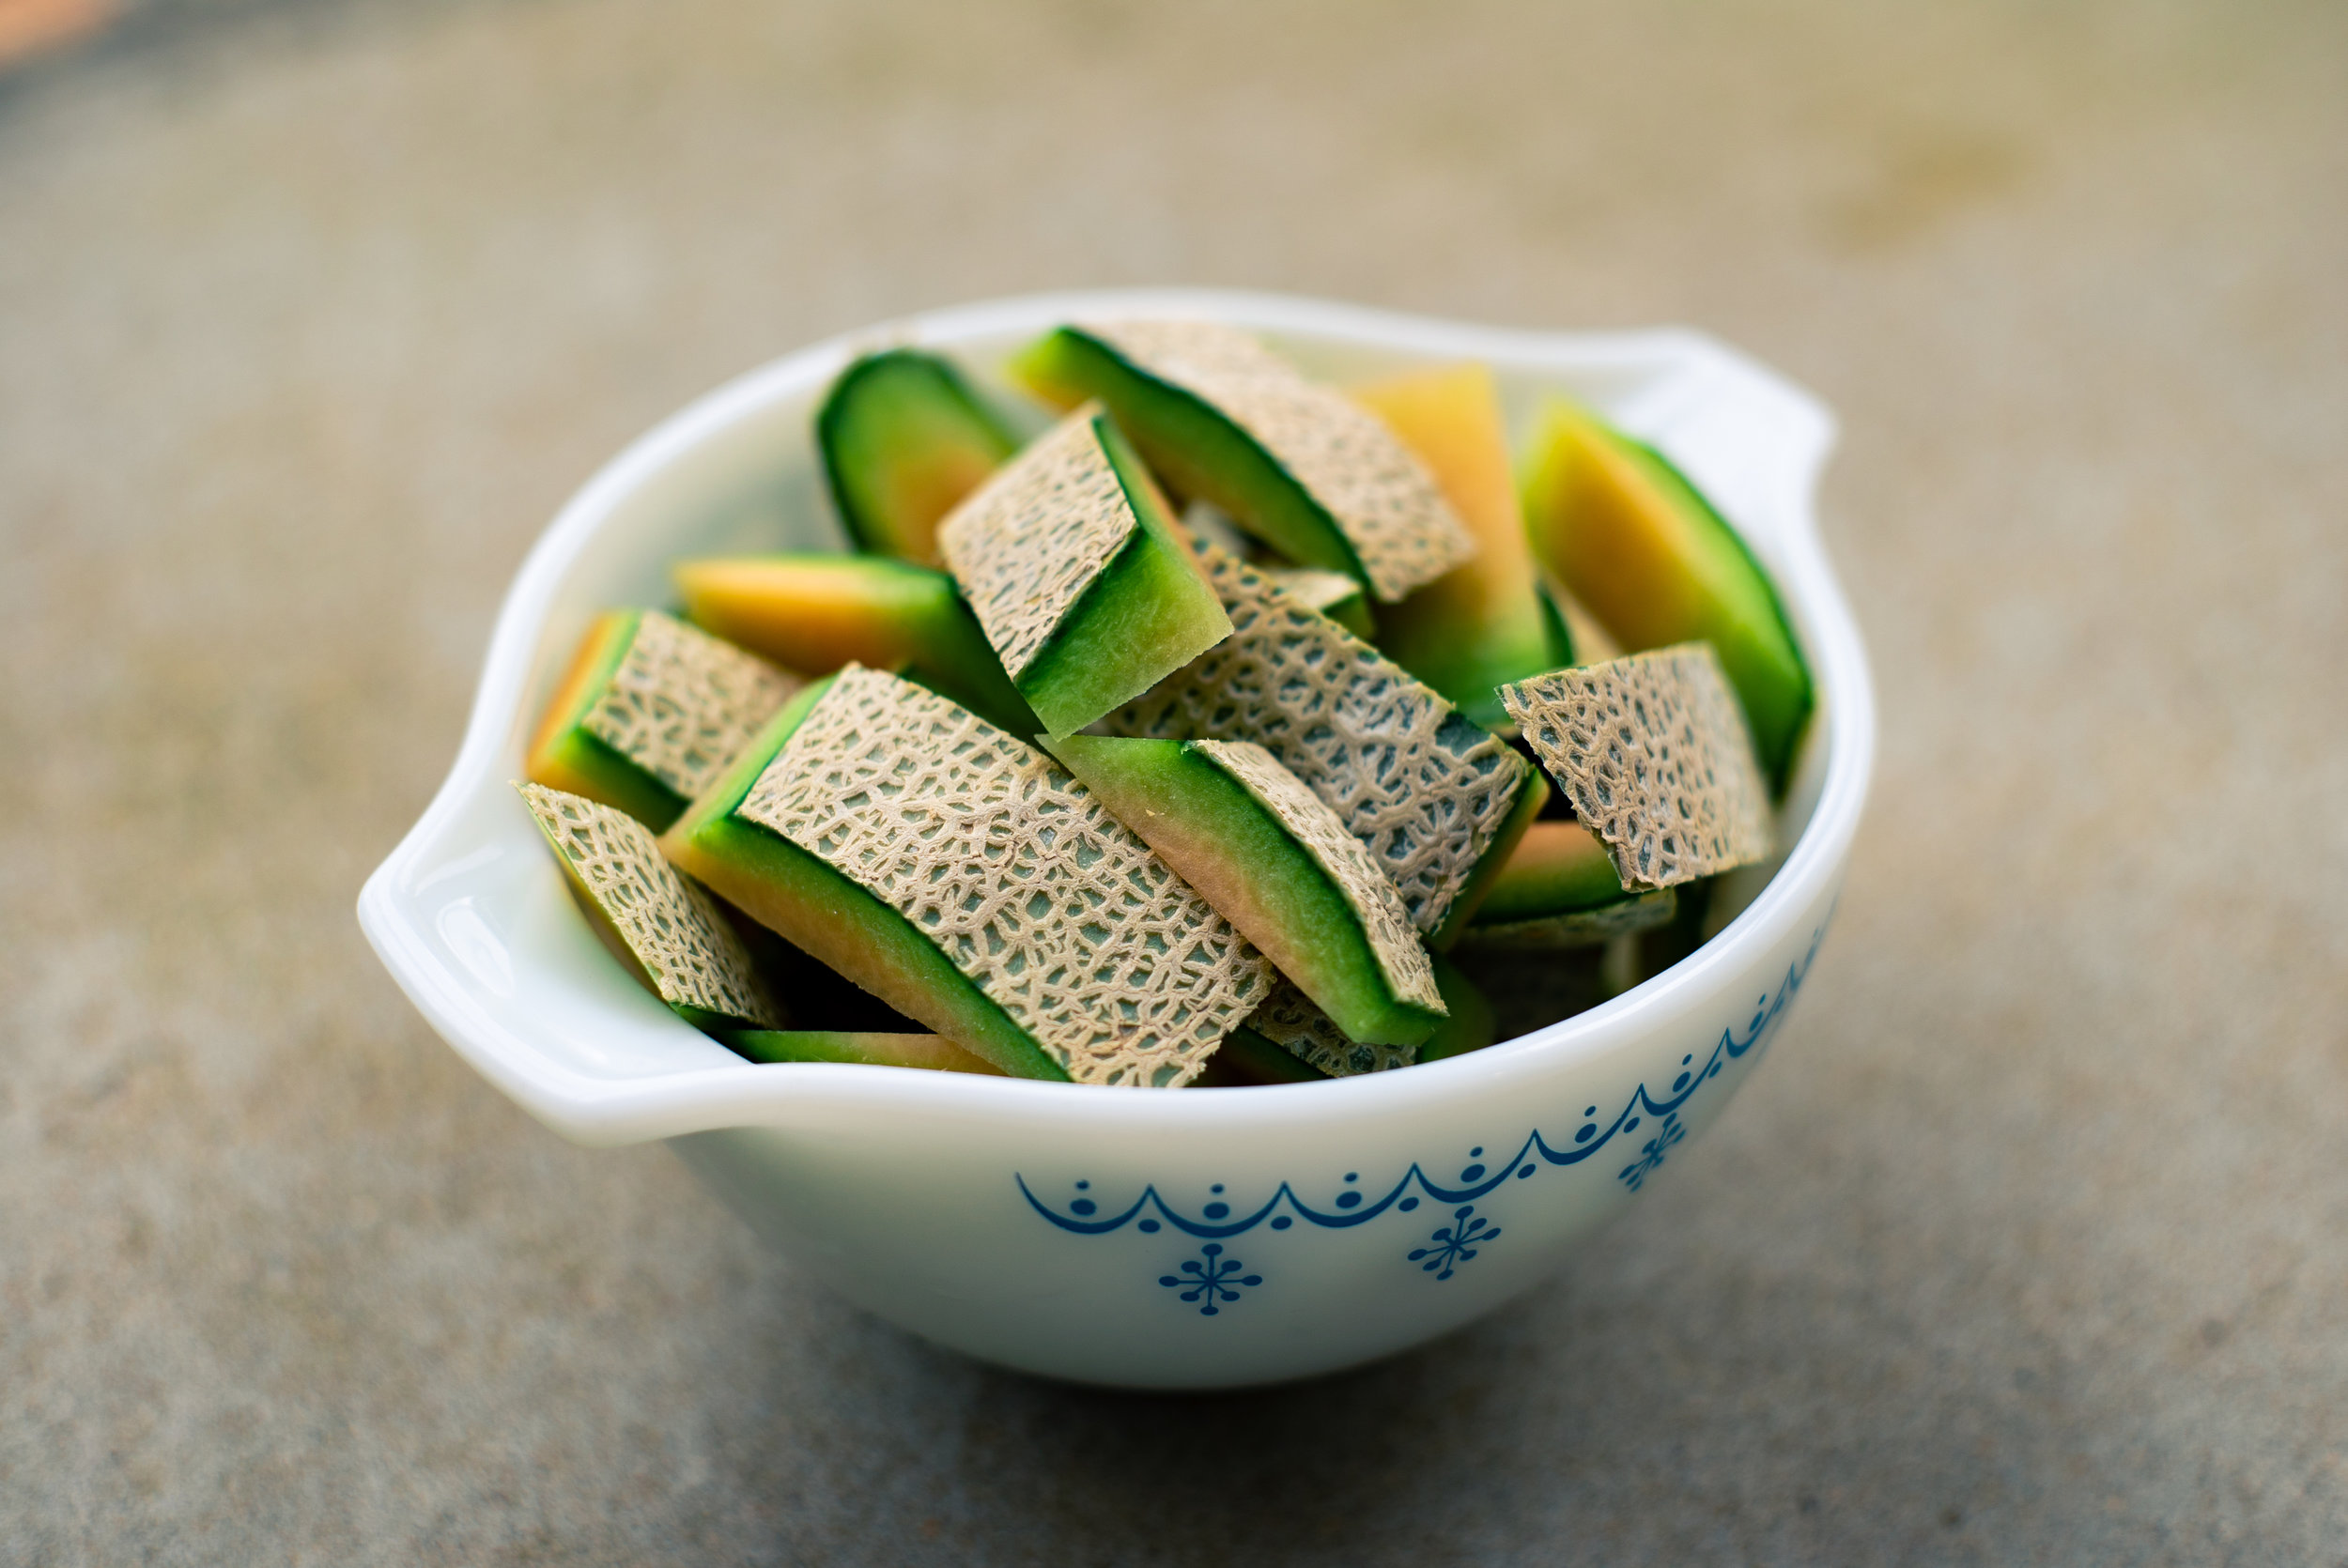 cantaloupes - More than 60 percent of conventional cantaloupe samples contained no detectable pesticide residues.Only about 10 percent of cantaloupe samples contained more than one pesticide residue.